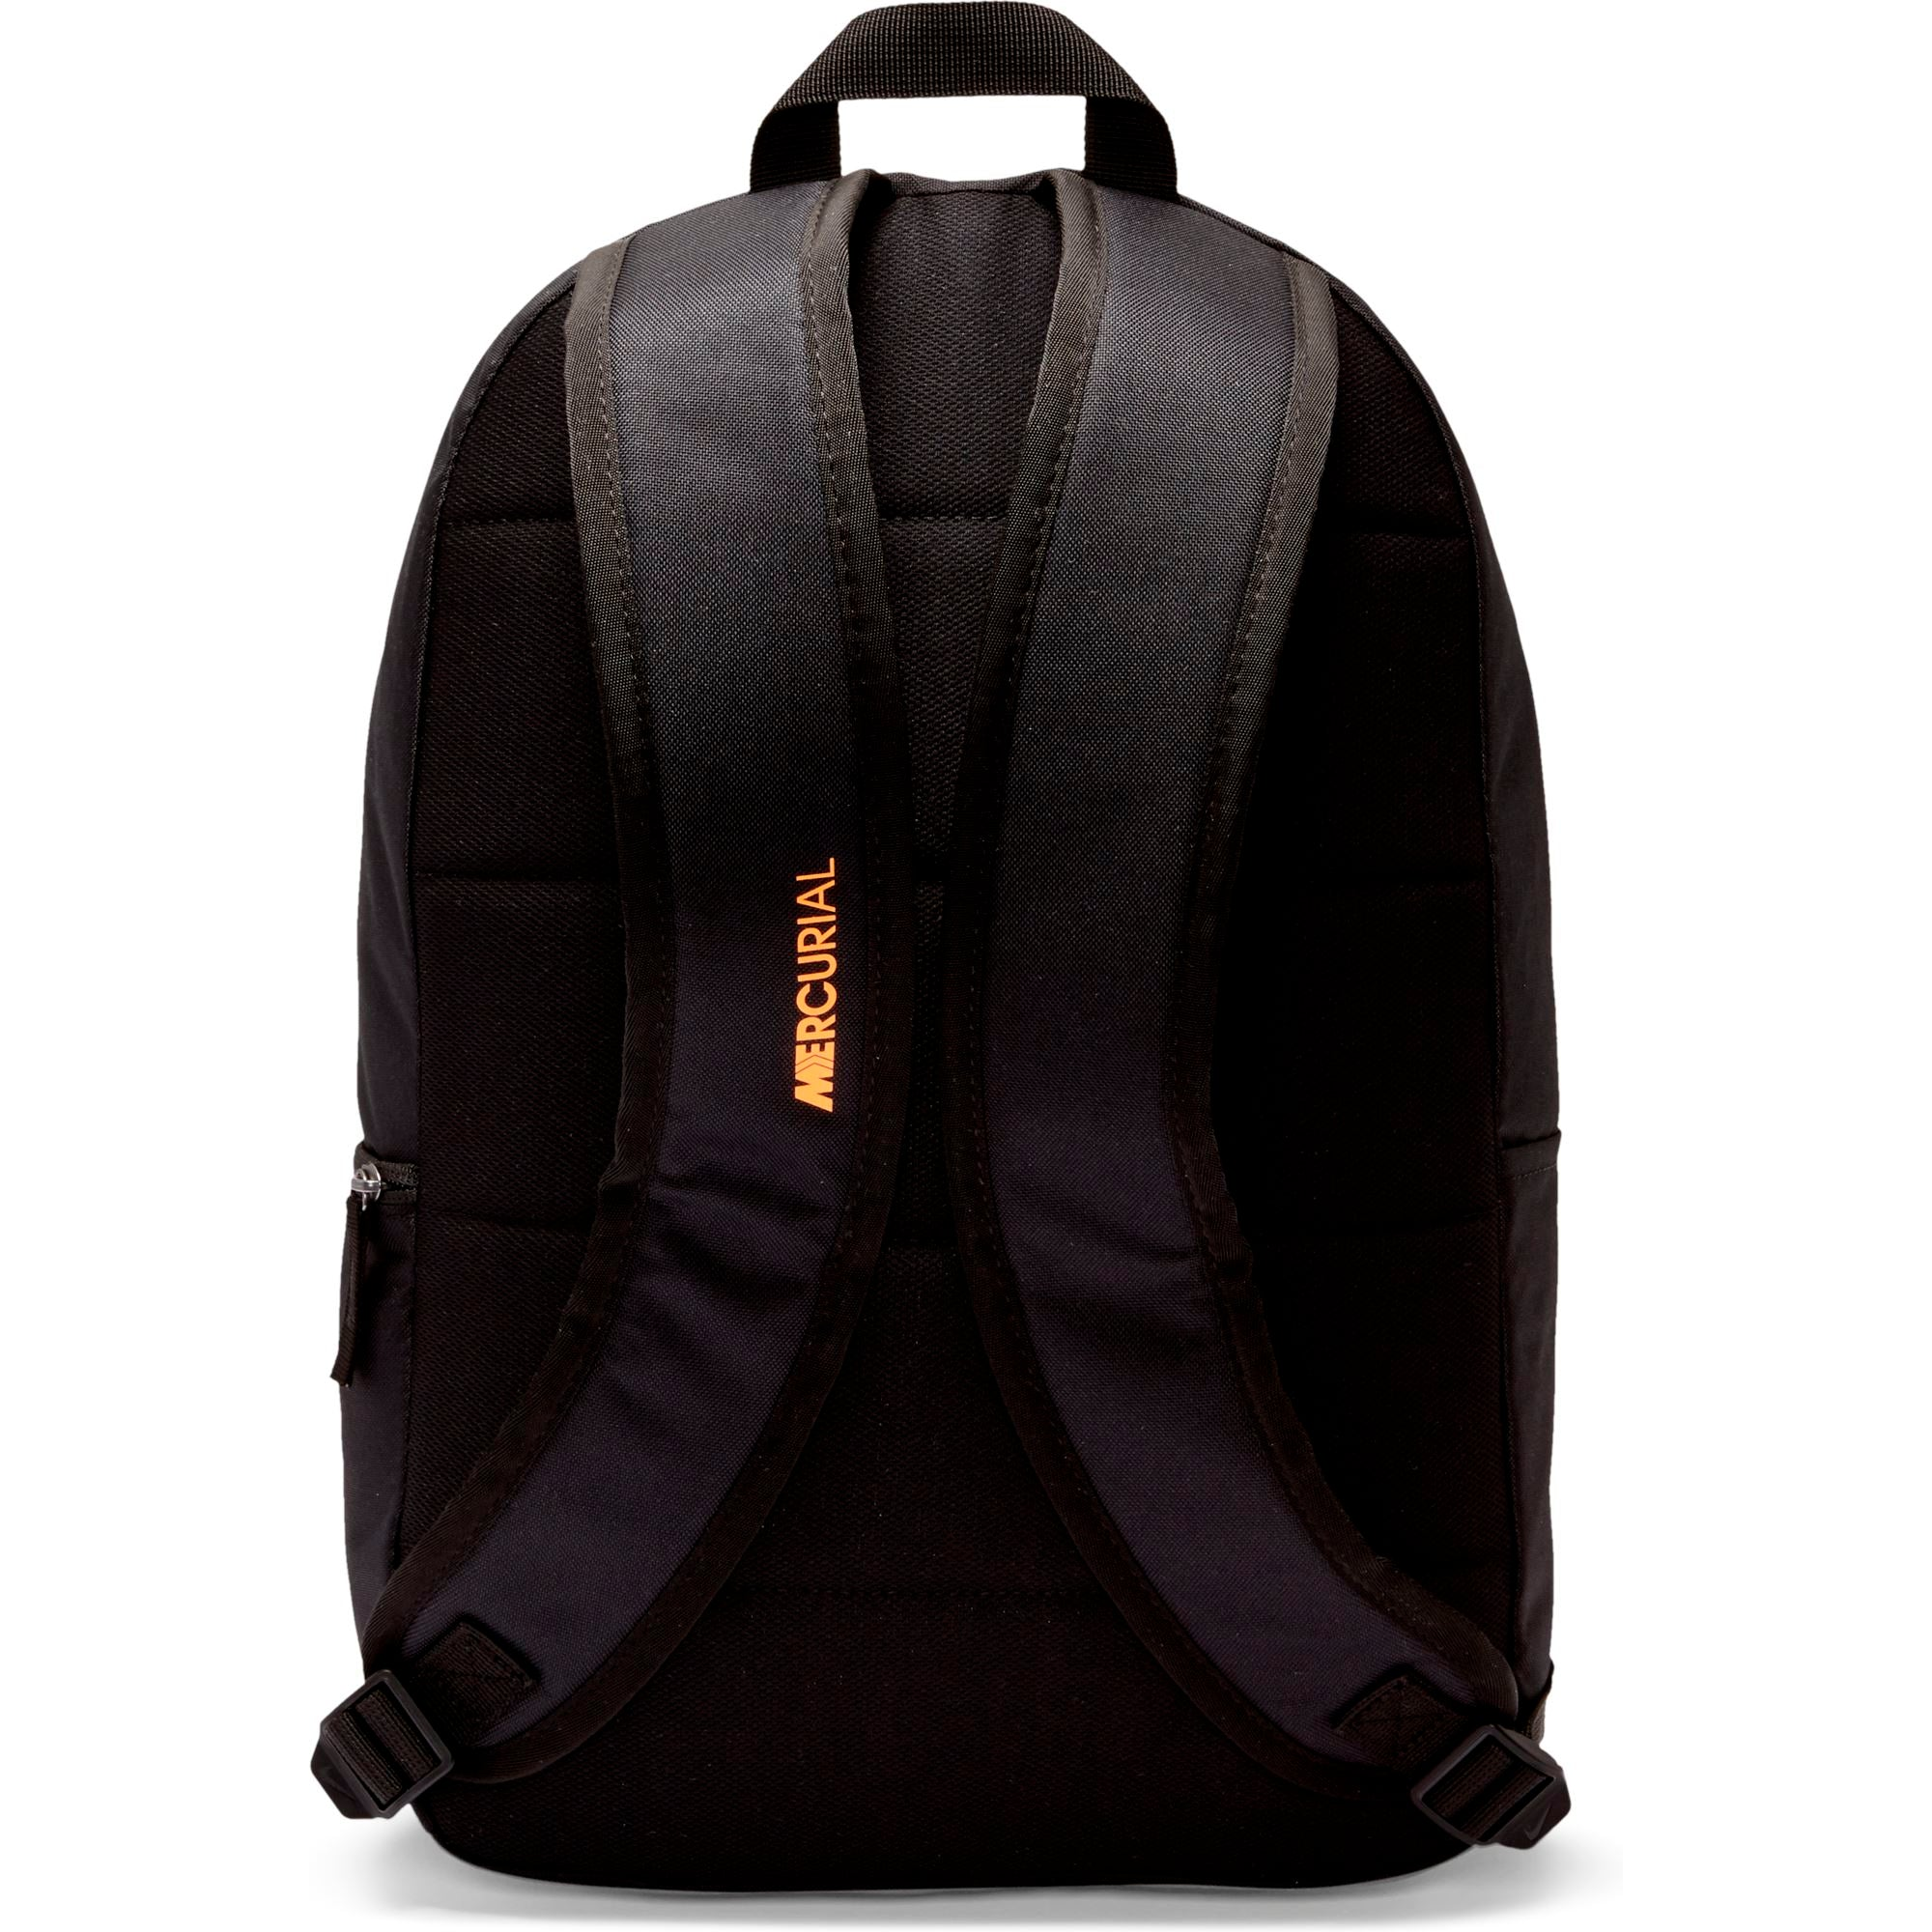 Nike Kids CR7 Backpack - Black/White/Total Orange SP-Accessories-Bags Nike